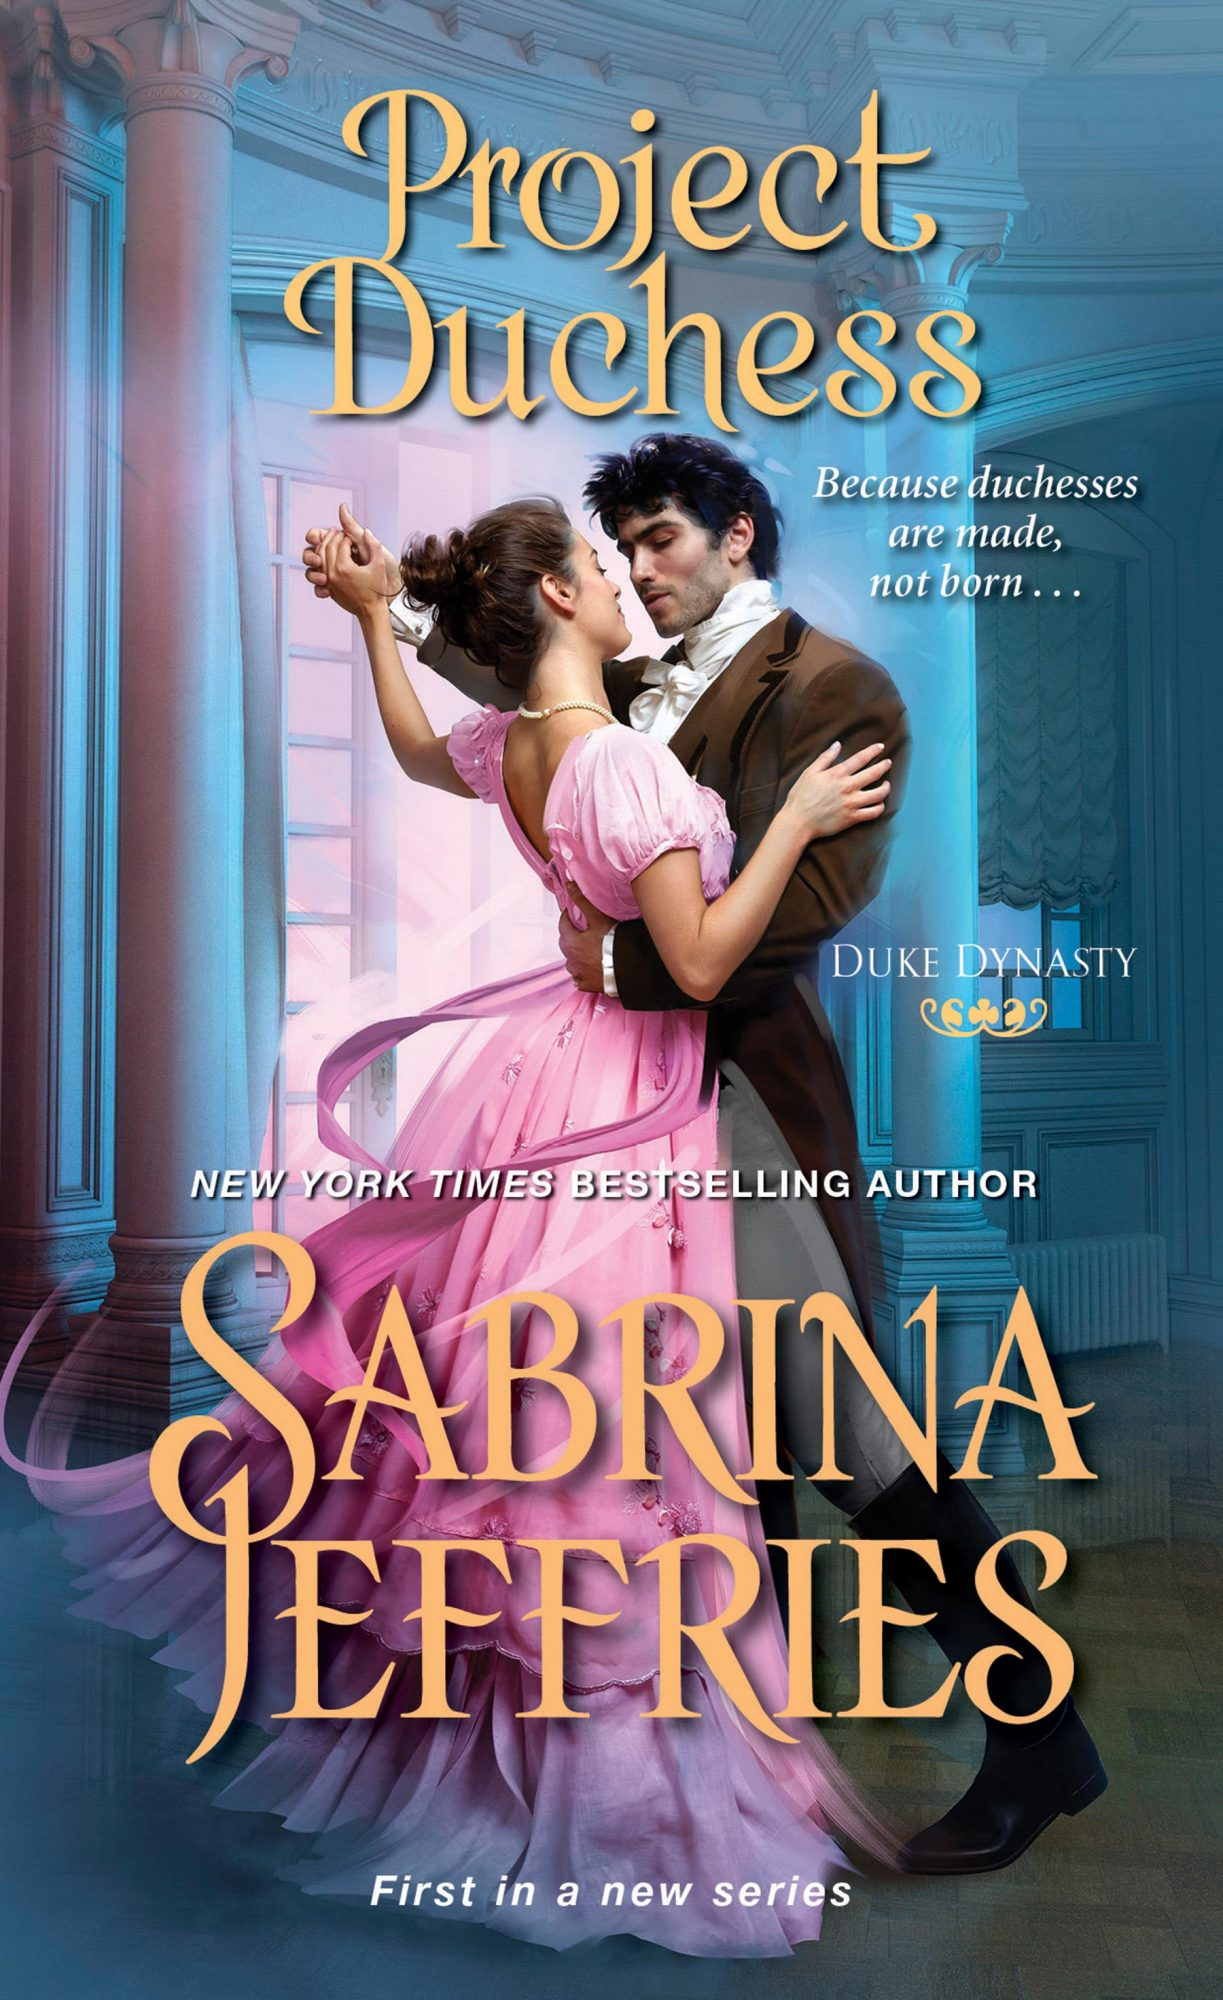 Project Duchess by Sabrina Jeffries CR: Zebra Books